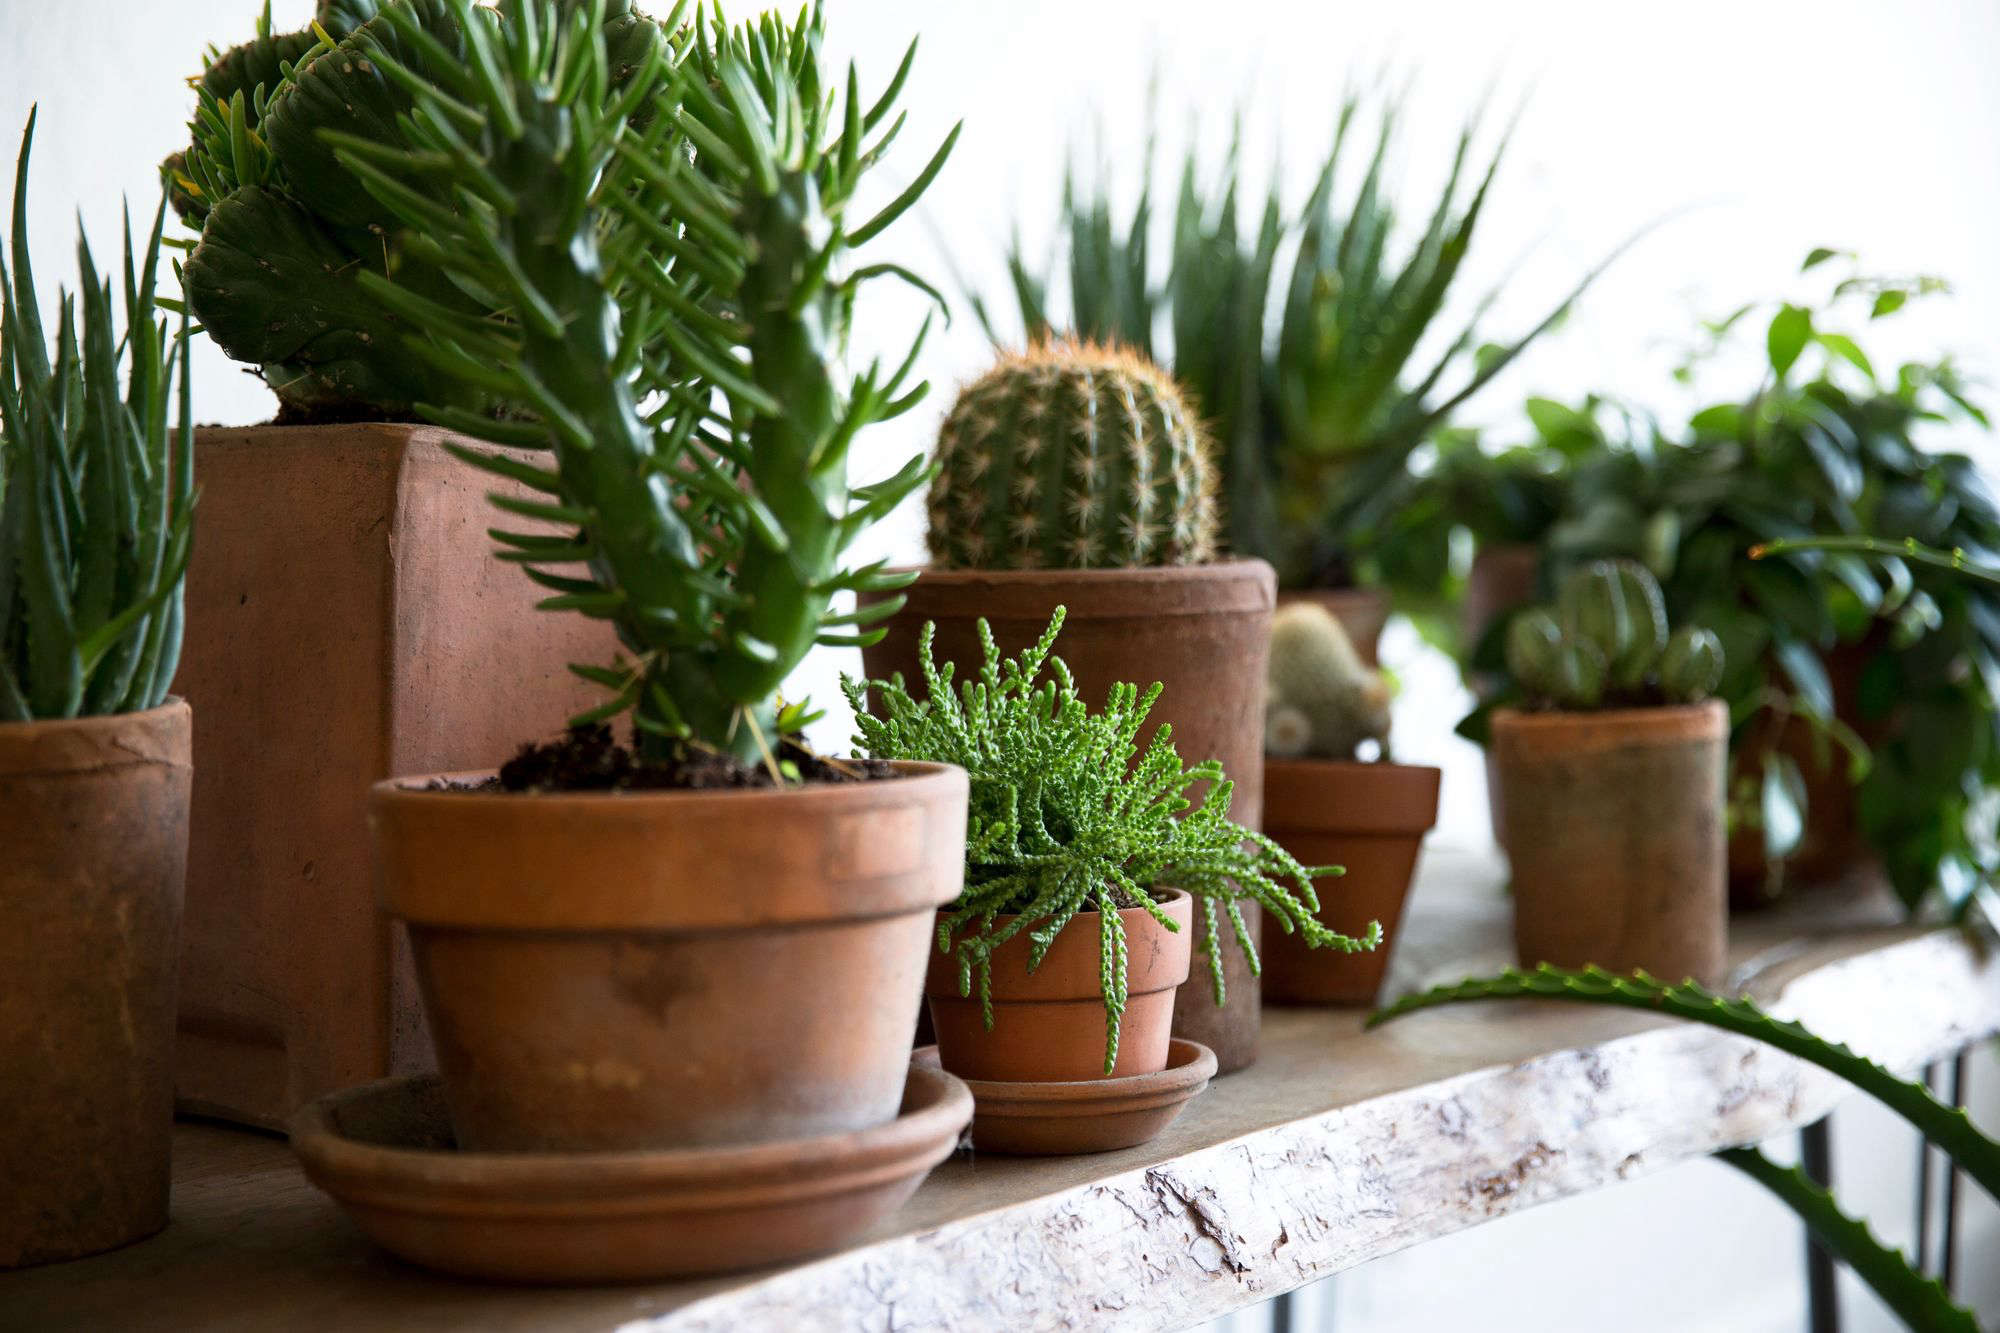 34 Best House plants images in 2019 | Planting Flowers ...